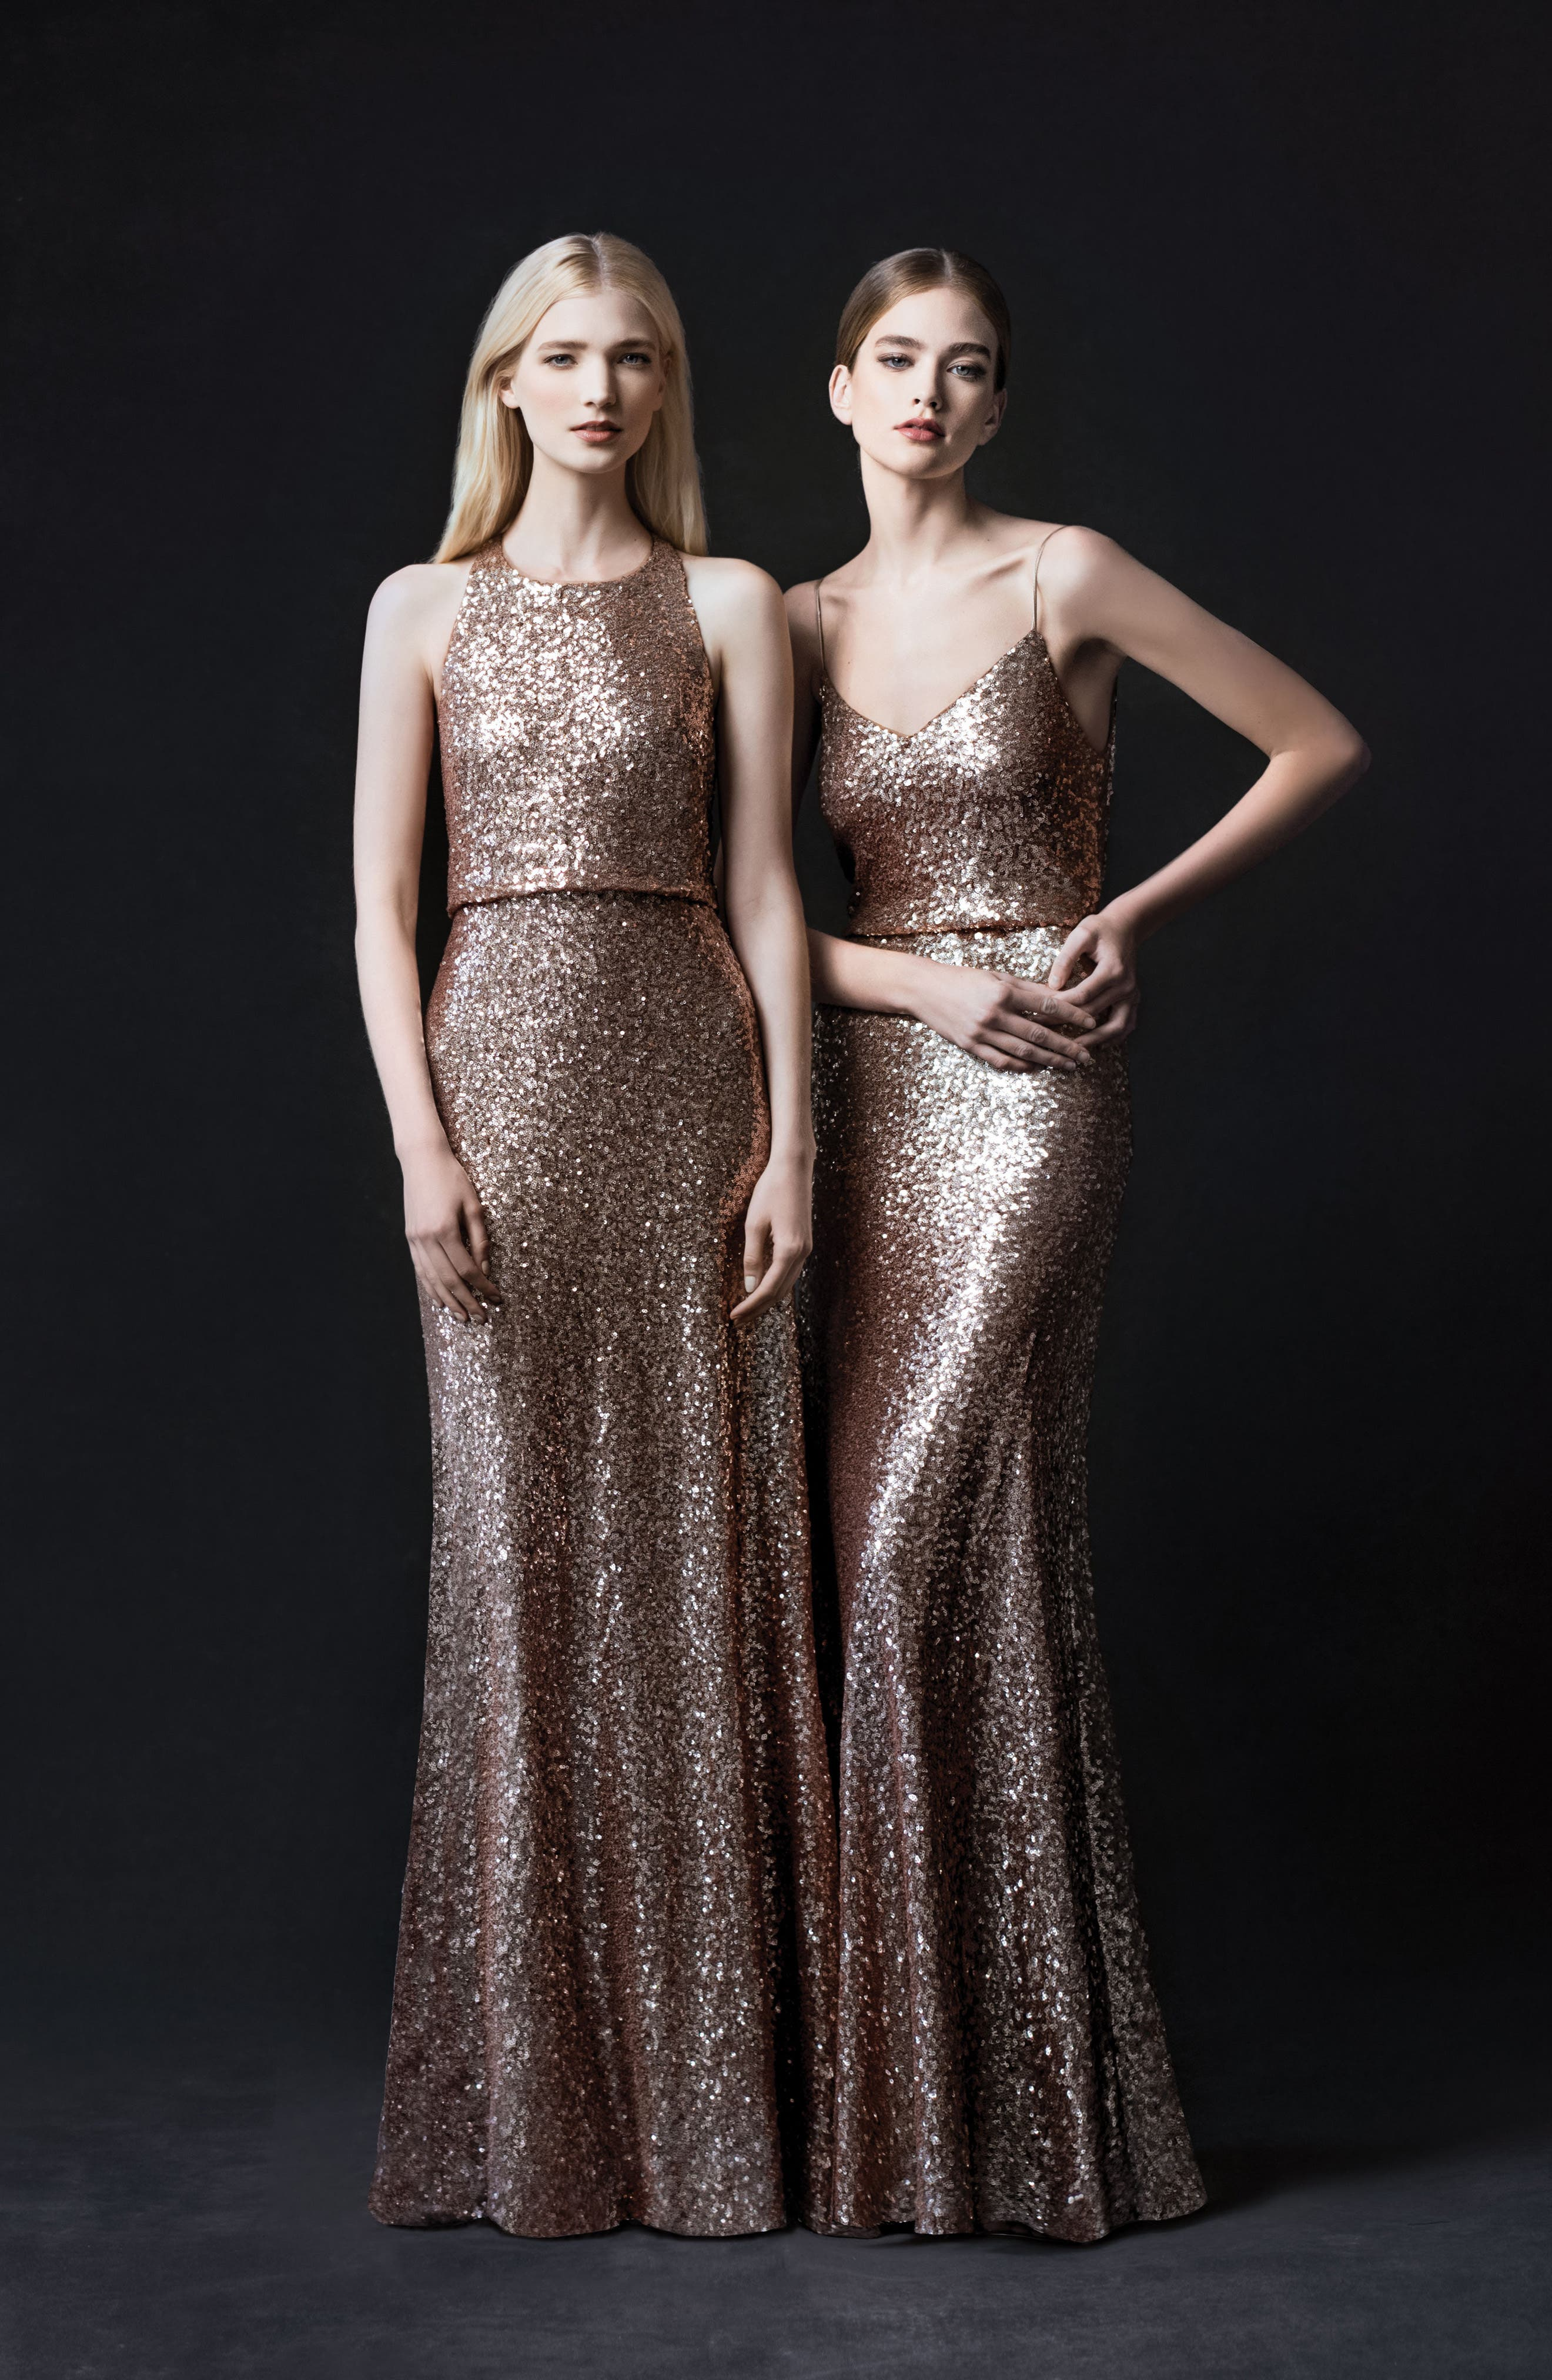 Jules Sequin Blouson Gown with Detachable Back Cowl,                             Alternate thumbnail 6, color,                             686